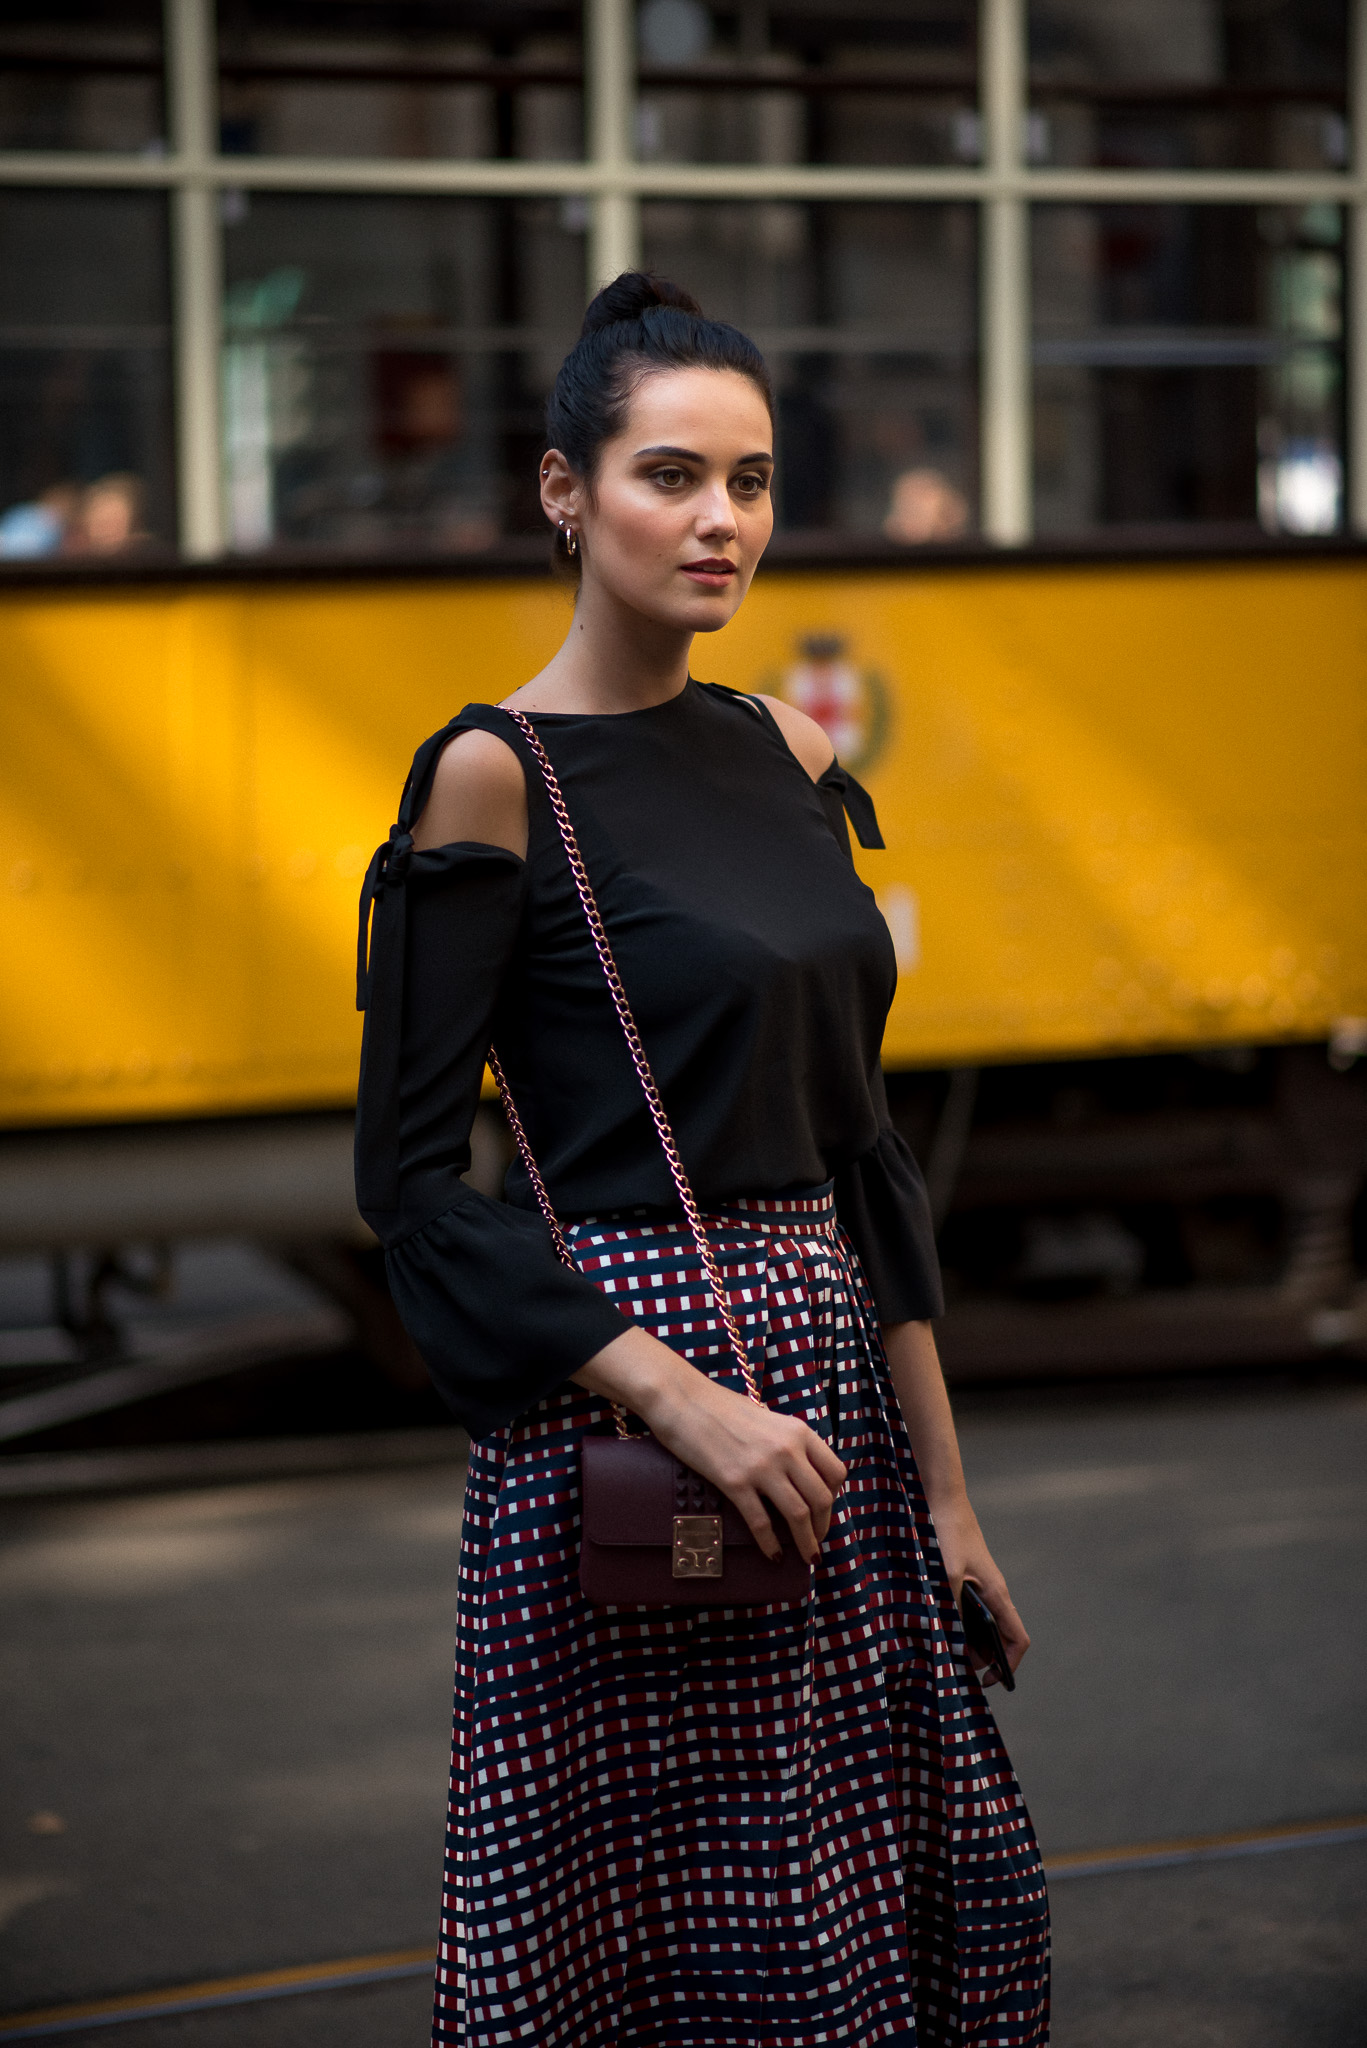 catherine-poulain_dolce-gabbana_milan-fashion-week_sept-2016_www-annikasomething-com-5